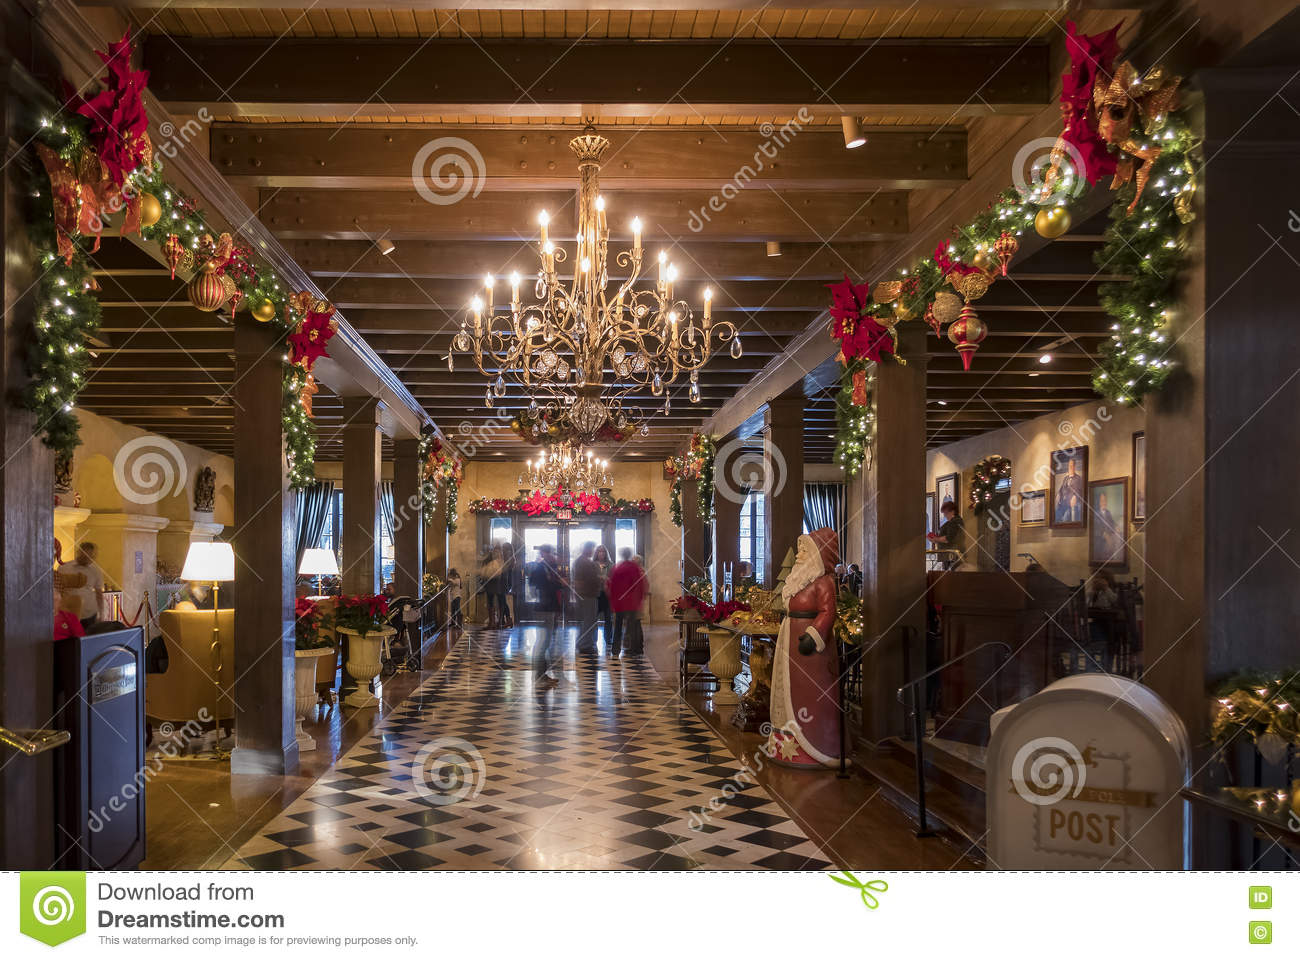 Exclusive Weihnachtsdeko Beautiful Christmas Lights Inside Of Mission Inn Editorial